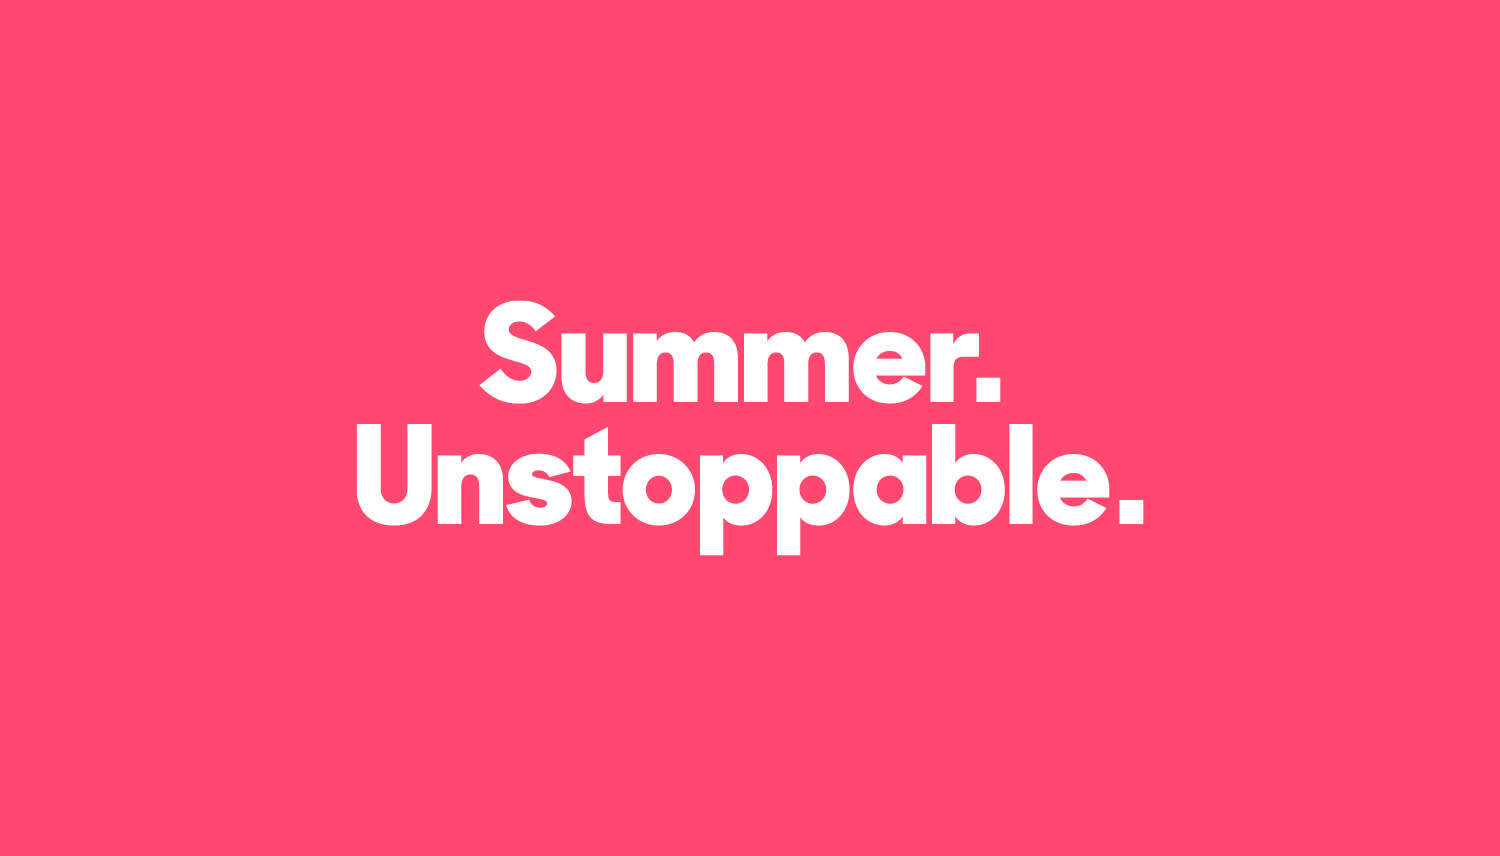 Summer. Unstoppable. Campaign